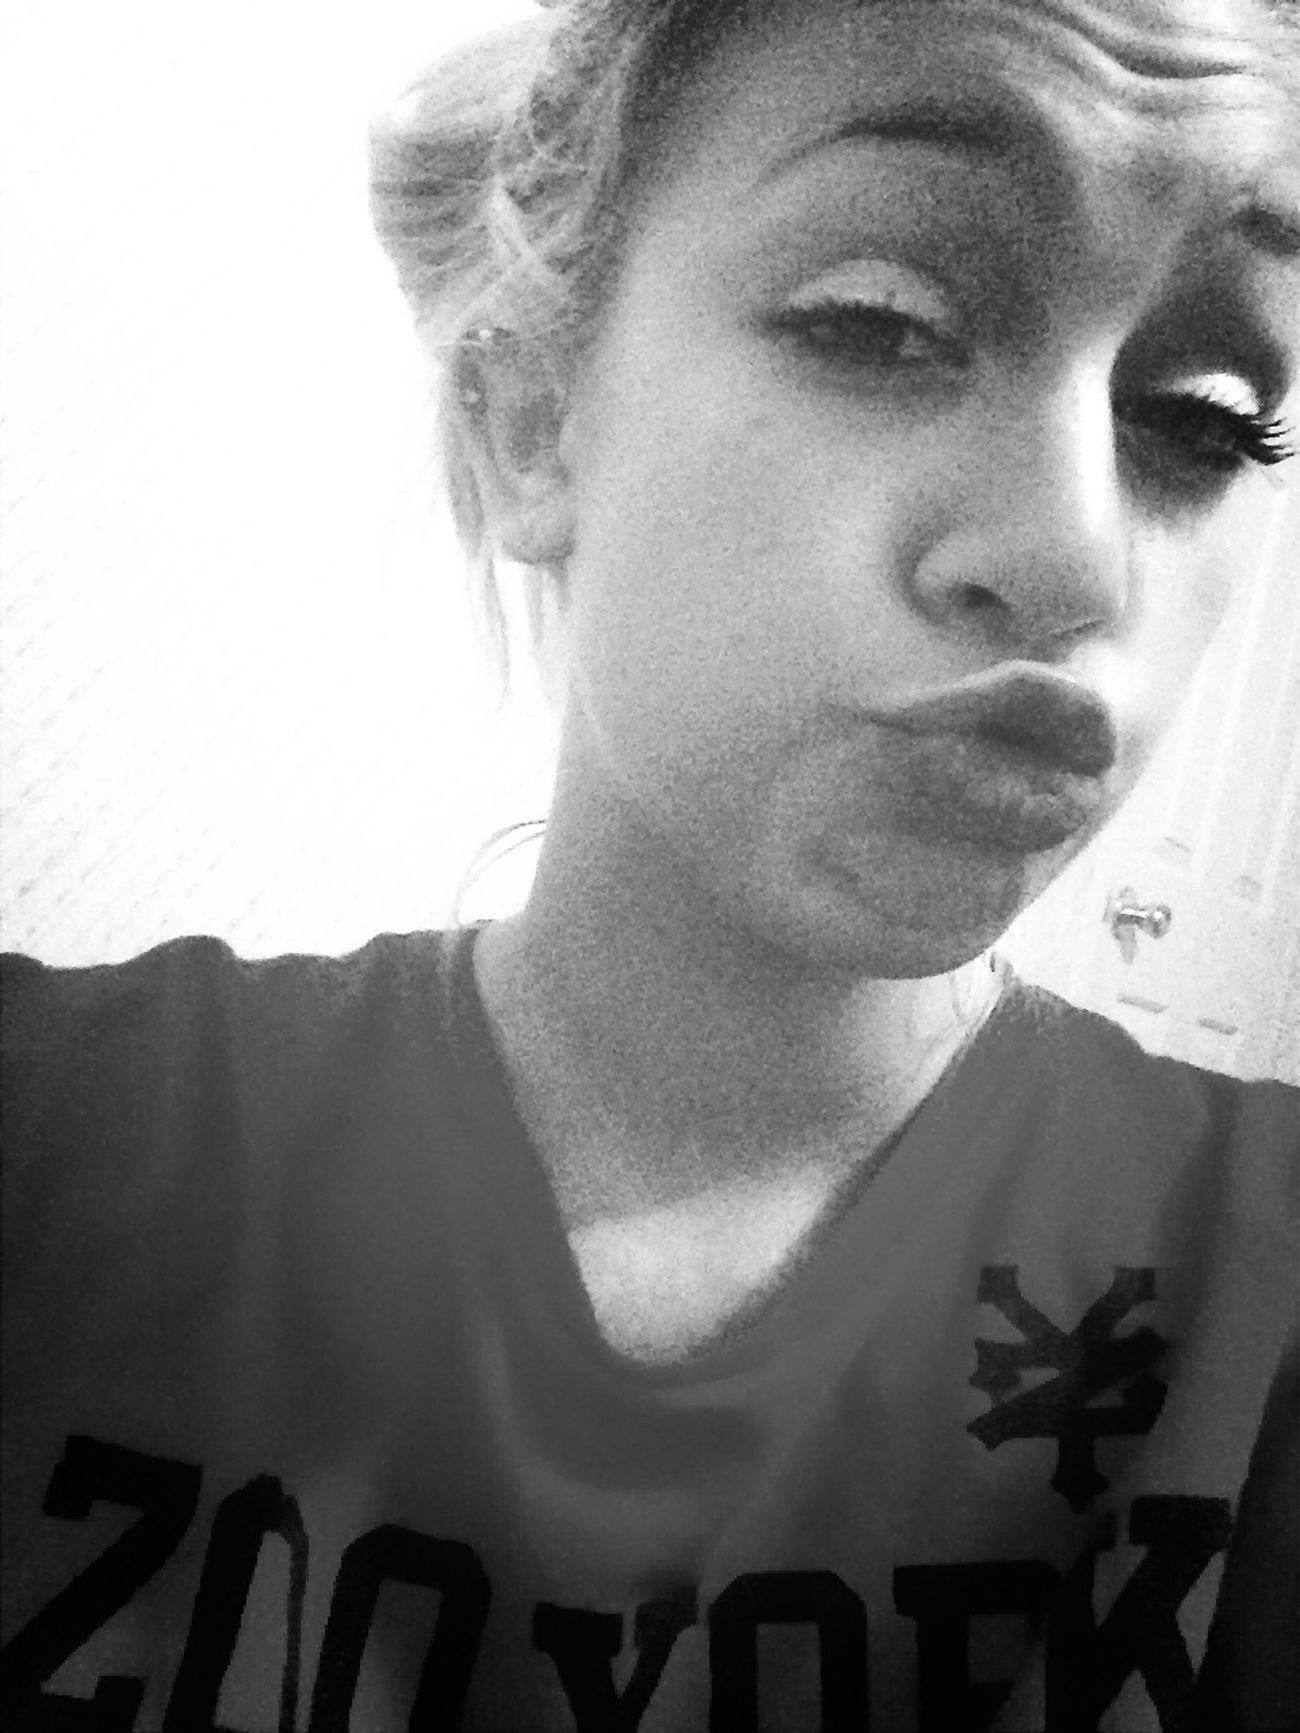 #TjsShirt#DuckLips#Lol